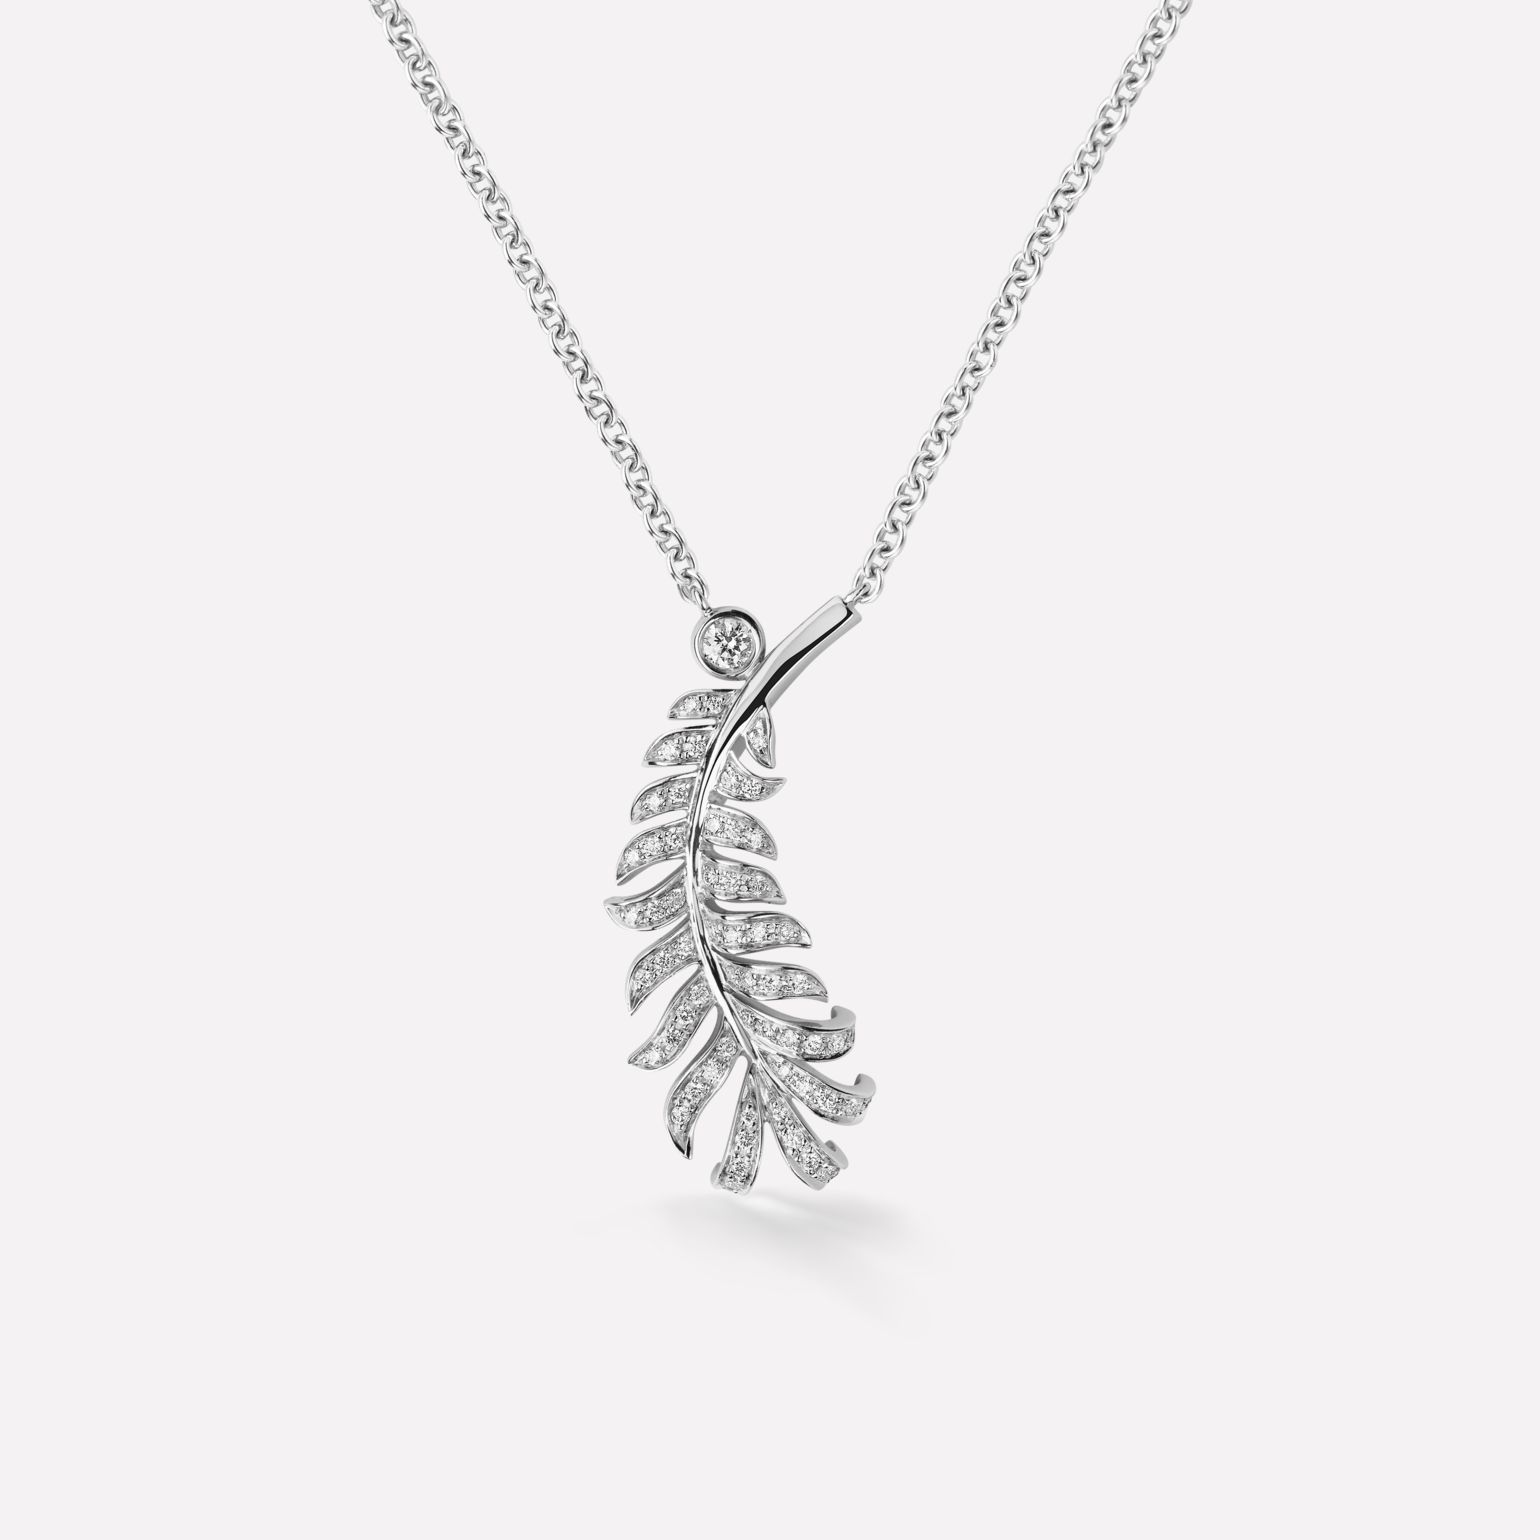 Plume de CHANEL necklace Plume necklace in 18K white gold and diamonds